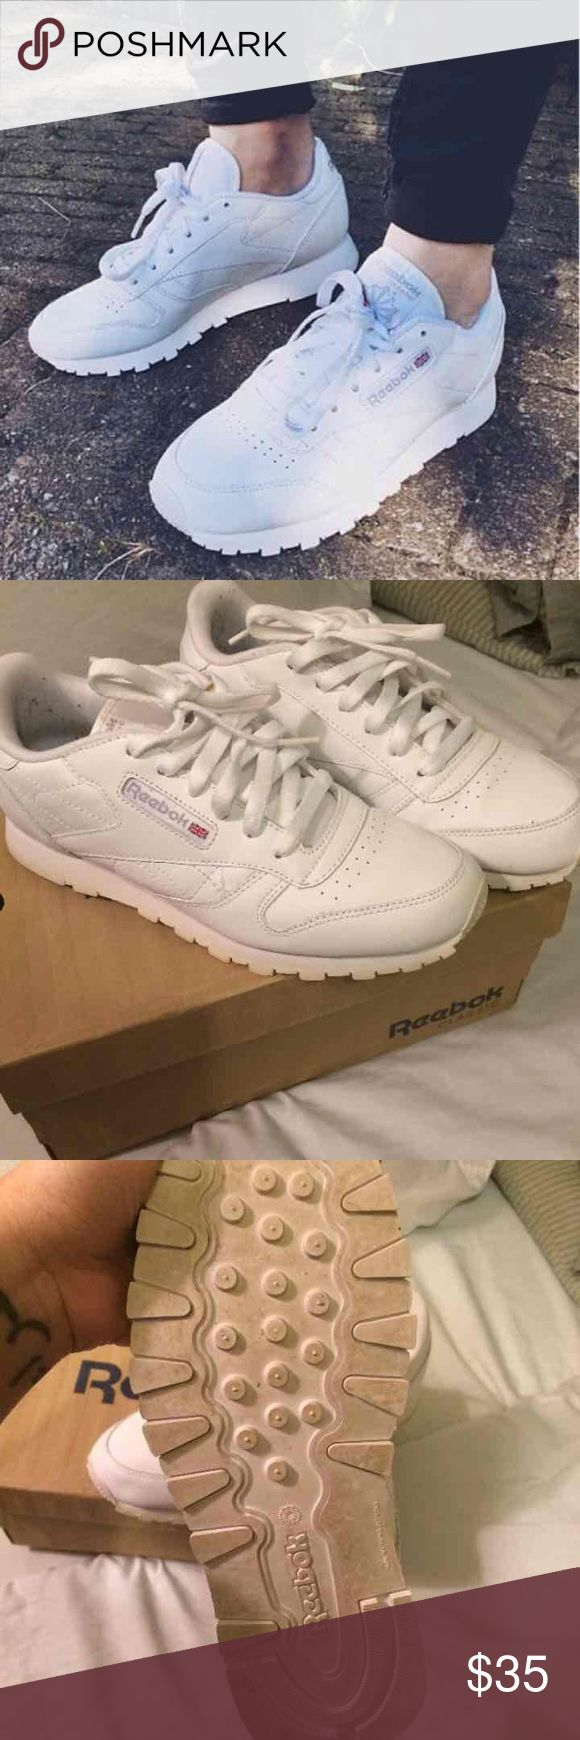 All White Reebok Classics Excellent condition  Has some pilling from my black socks on the inside  5.5 youth / 7.5 Women's  Comes with box Reebok Shoes Sneakers